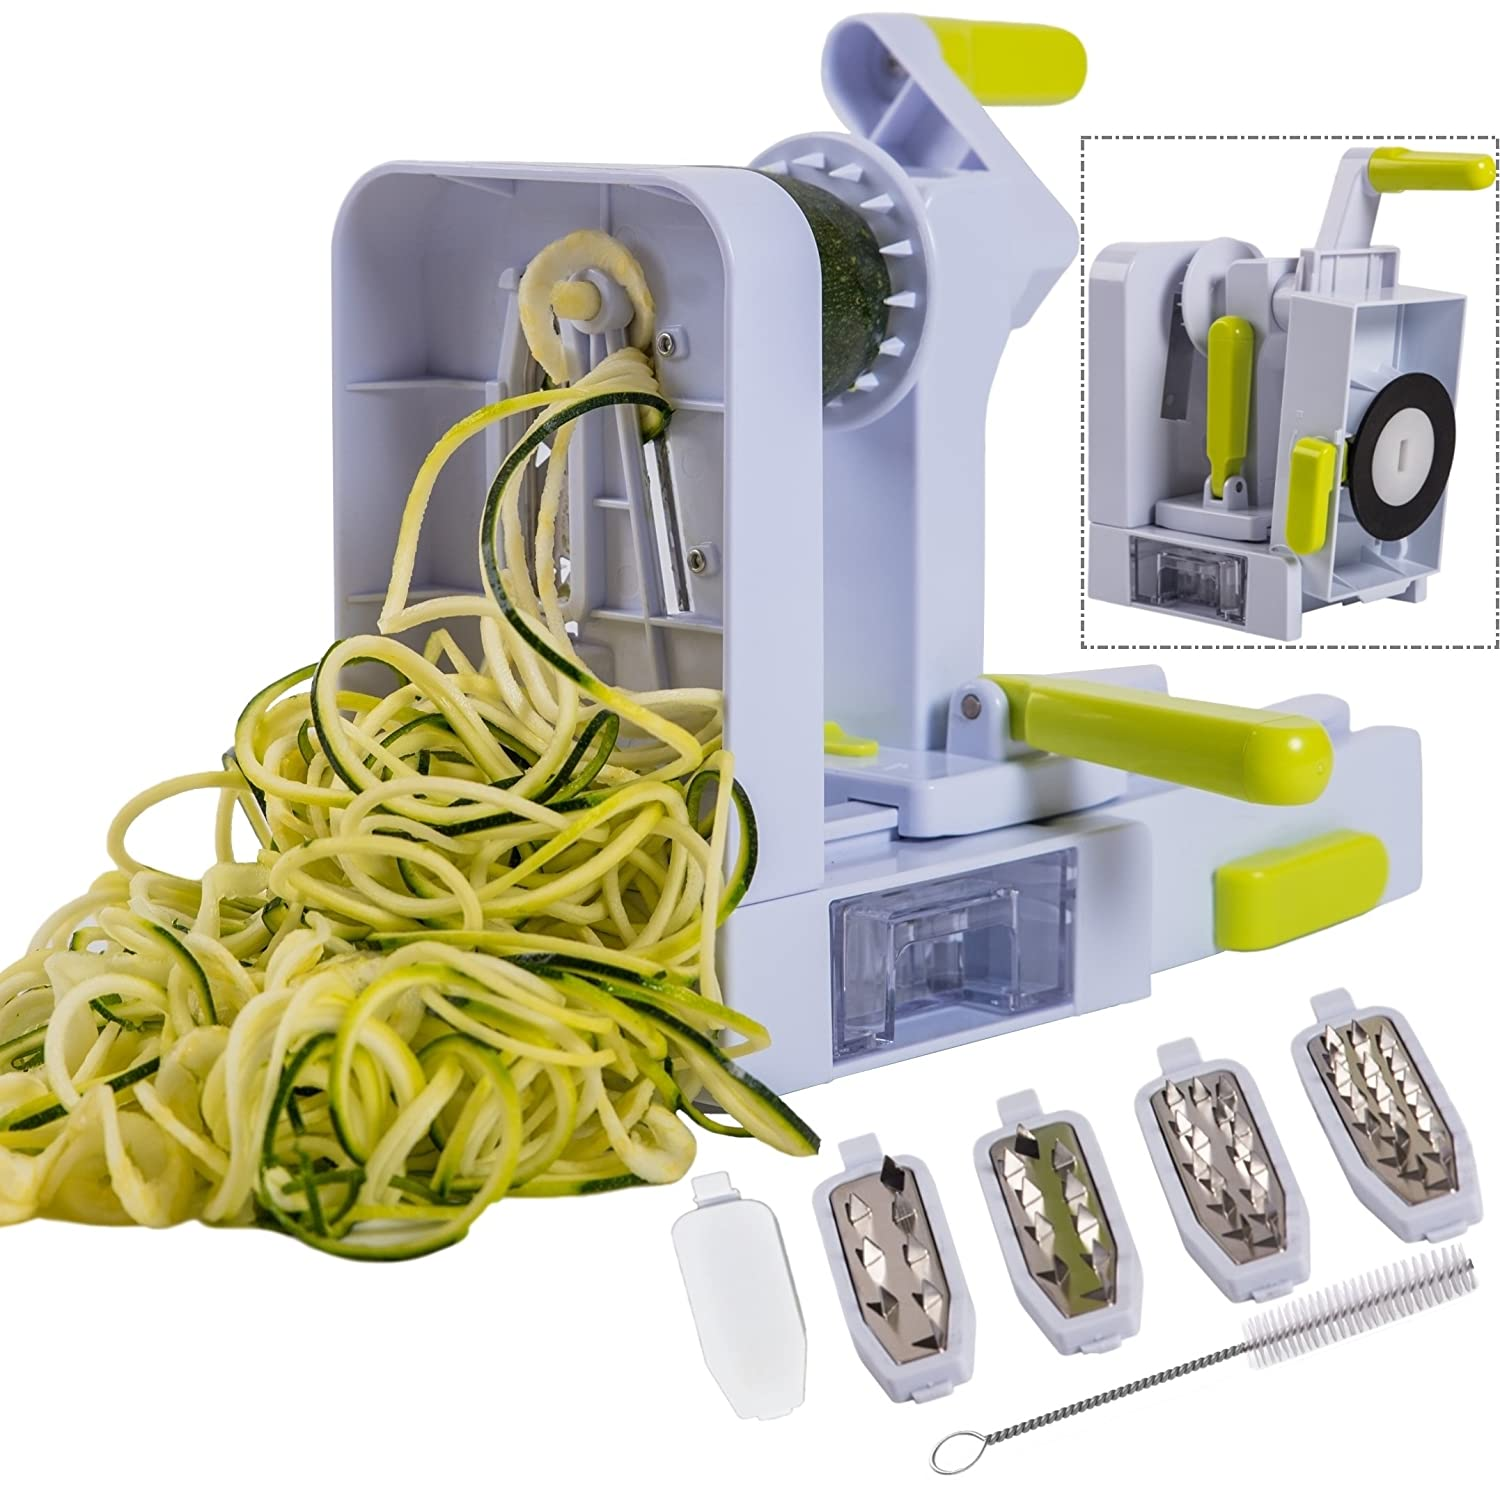 Brieftons QuickFold 5-Blade Spiralizer